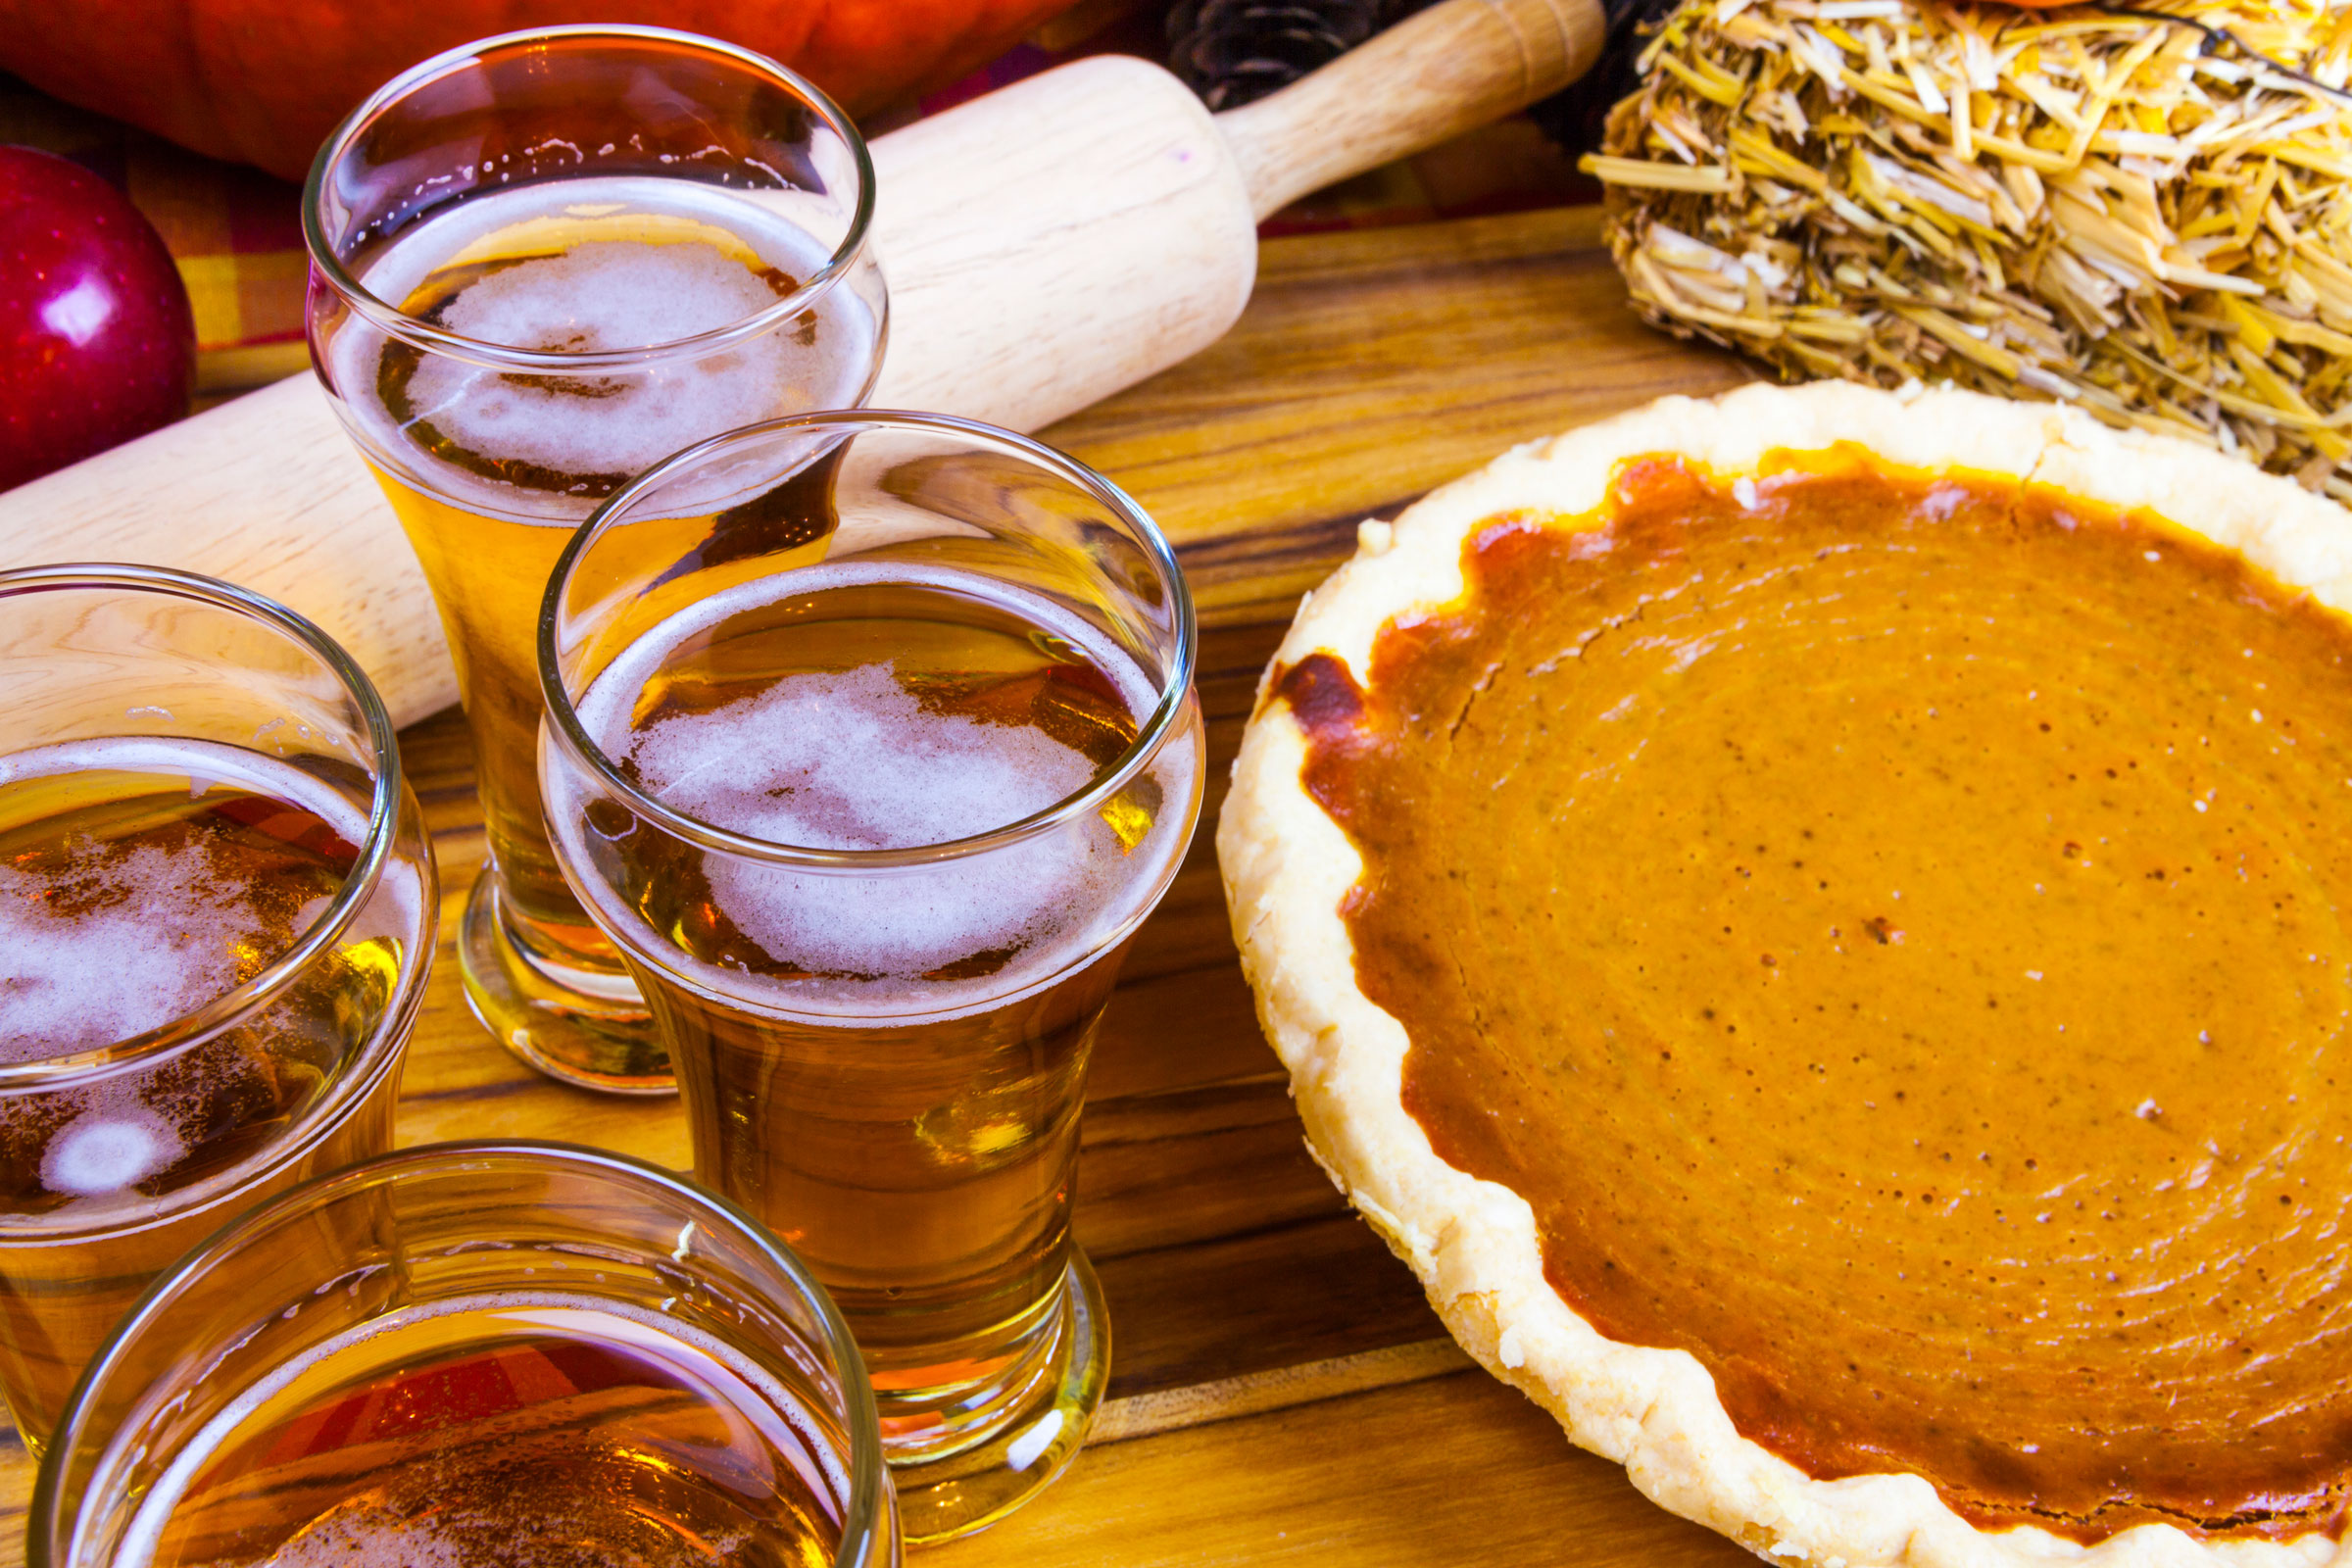 Incorporating Beer into Your Holiday Meal